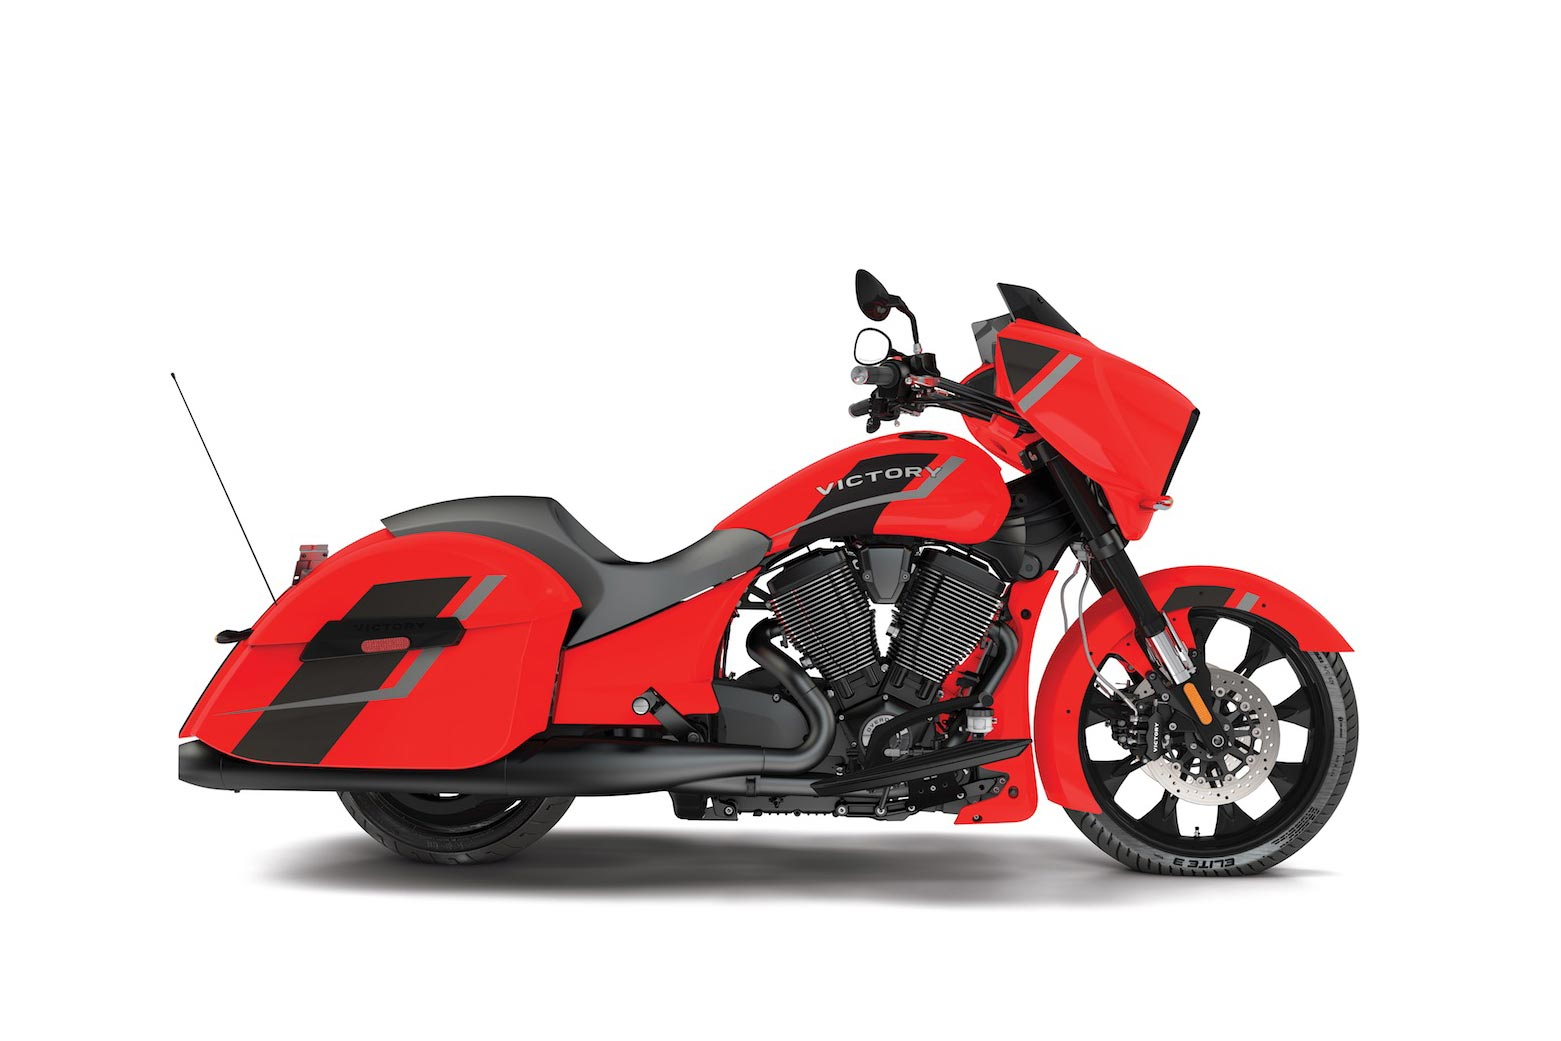 victory motorcycles polaris recalled being magnum motorcycle asphaltandrubber rubber